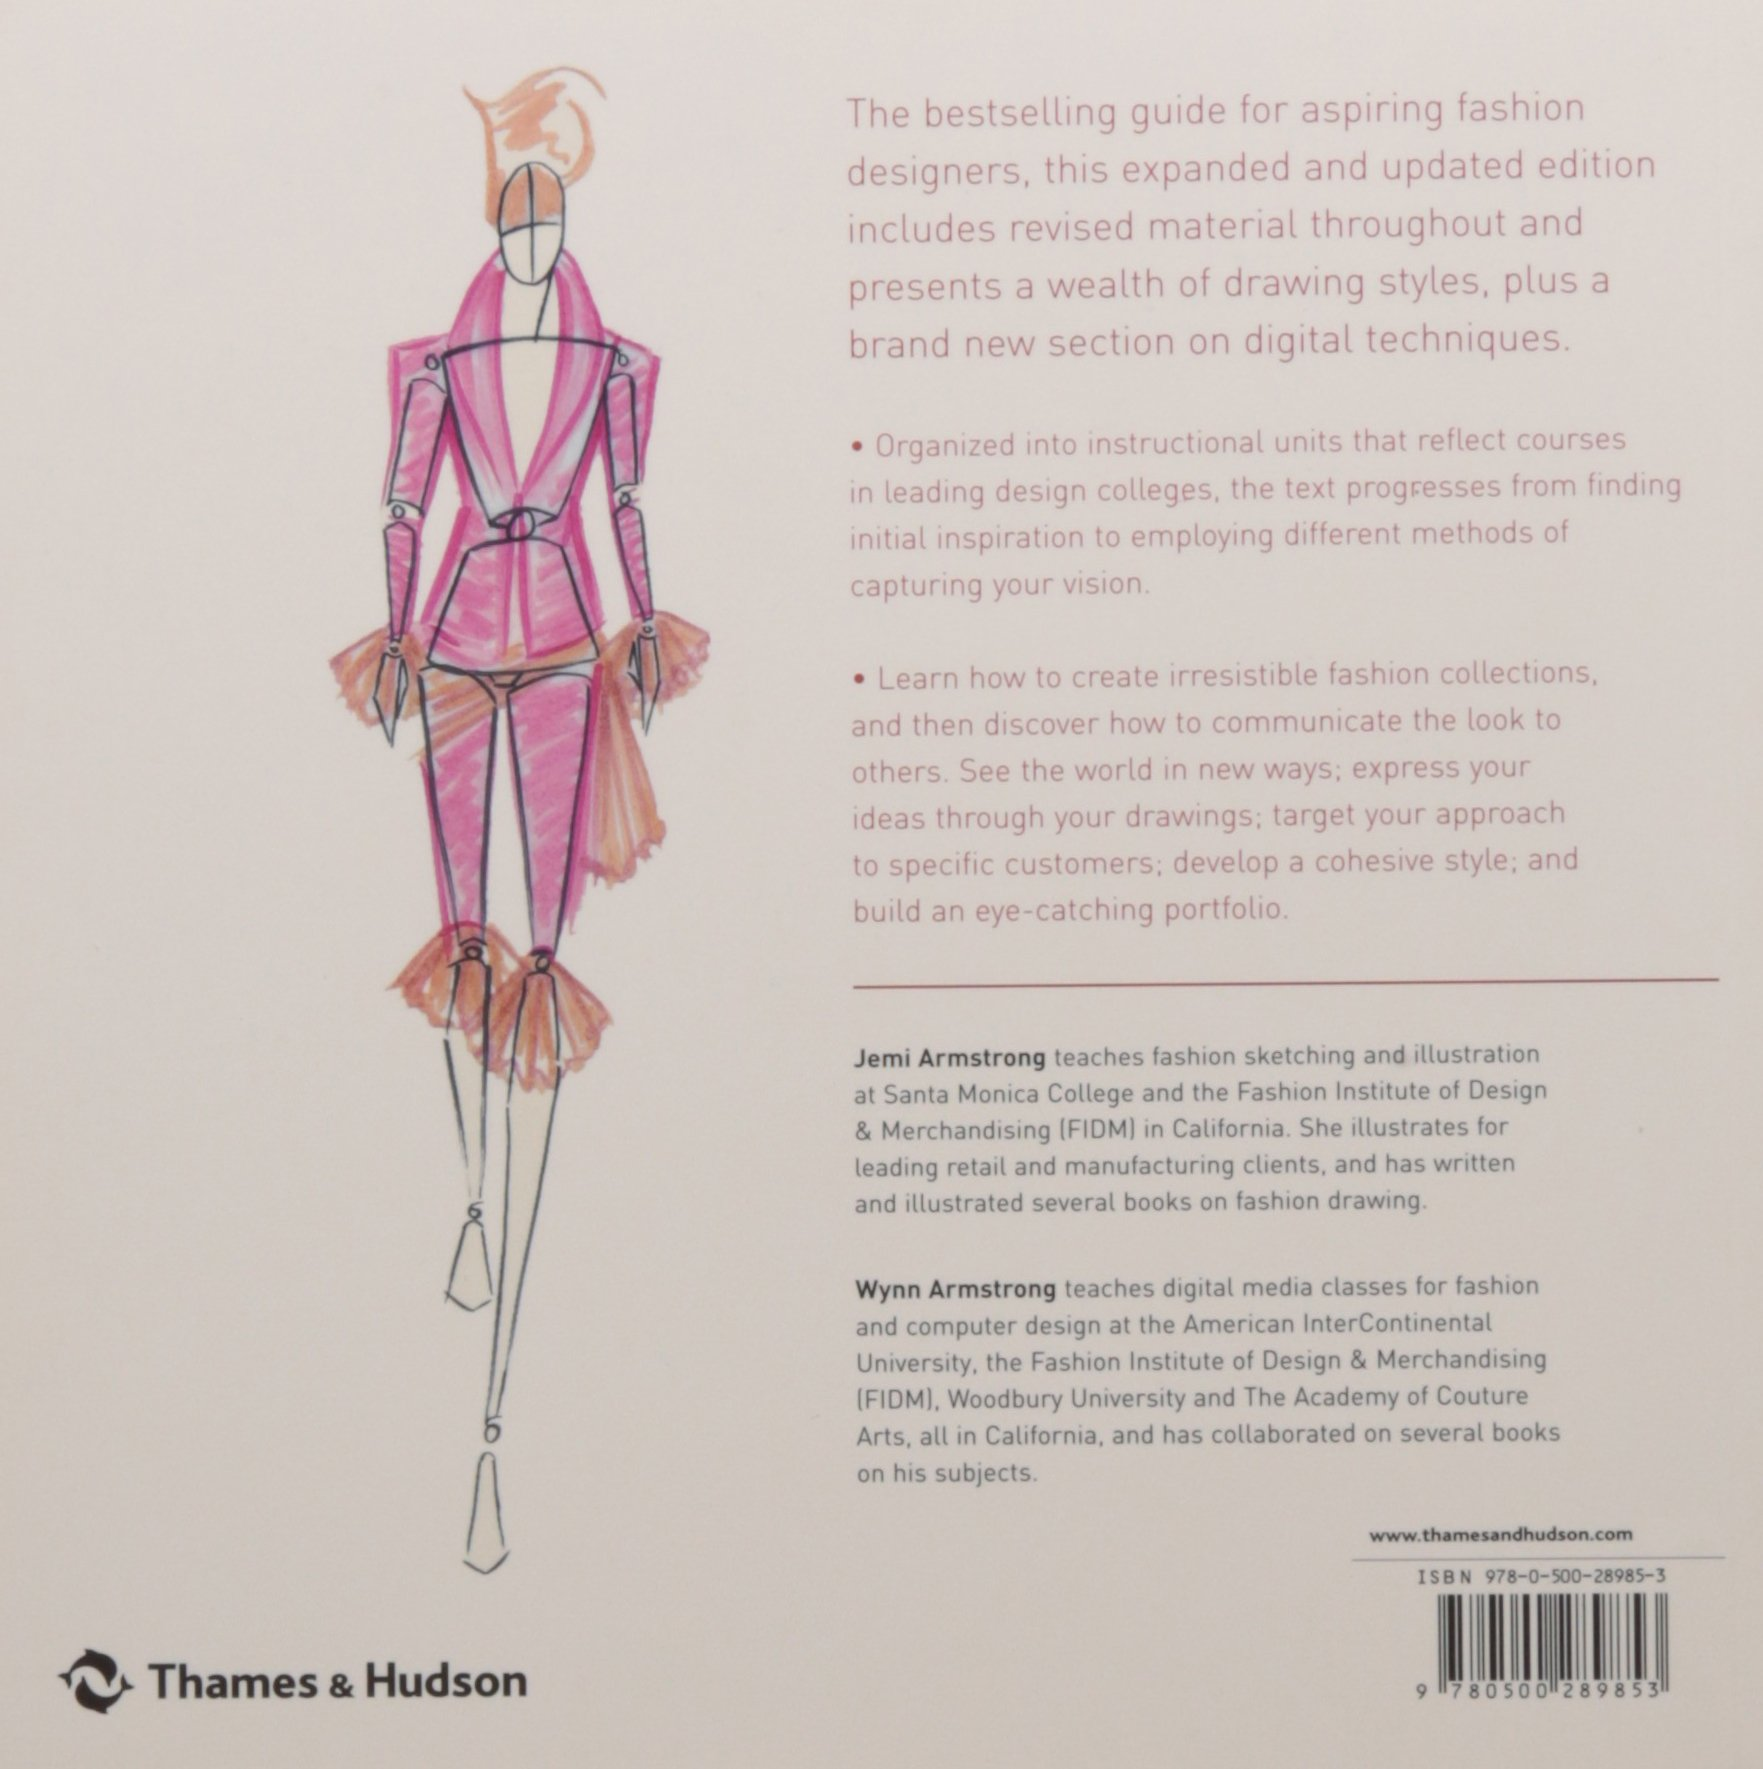 Fashion Design Drawing Course: Principles, Practice and